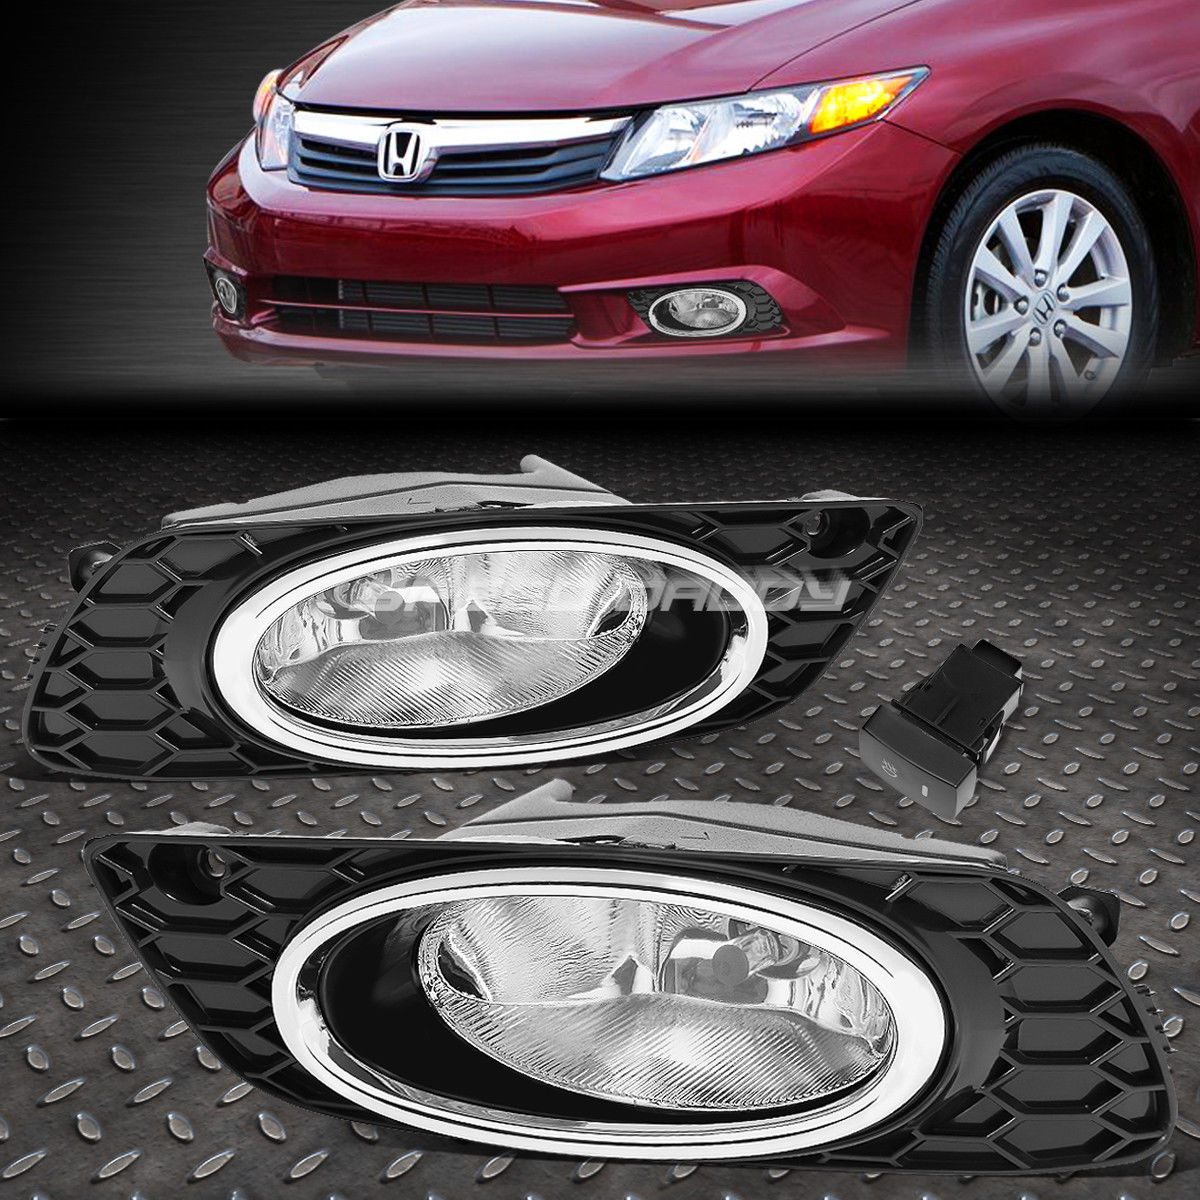 USフォグライト FOR 2012 CIVIC 4DR SWITCH FG PAIR CLEAR LENS OE CIVIC BUMPER FOG LIGHT LAMP PAIR+SWITCH KIT for 2012 CIVIC 4DR FGクリアレンズOE BUMPER FOG LIGHT LAMP PAIR + SWITCH KIT, アドショップ:3f178391 --- diadrasis.net